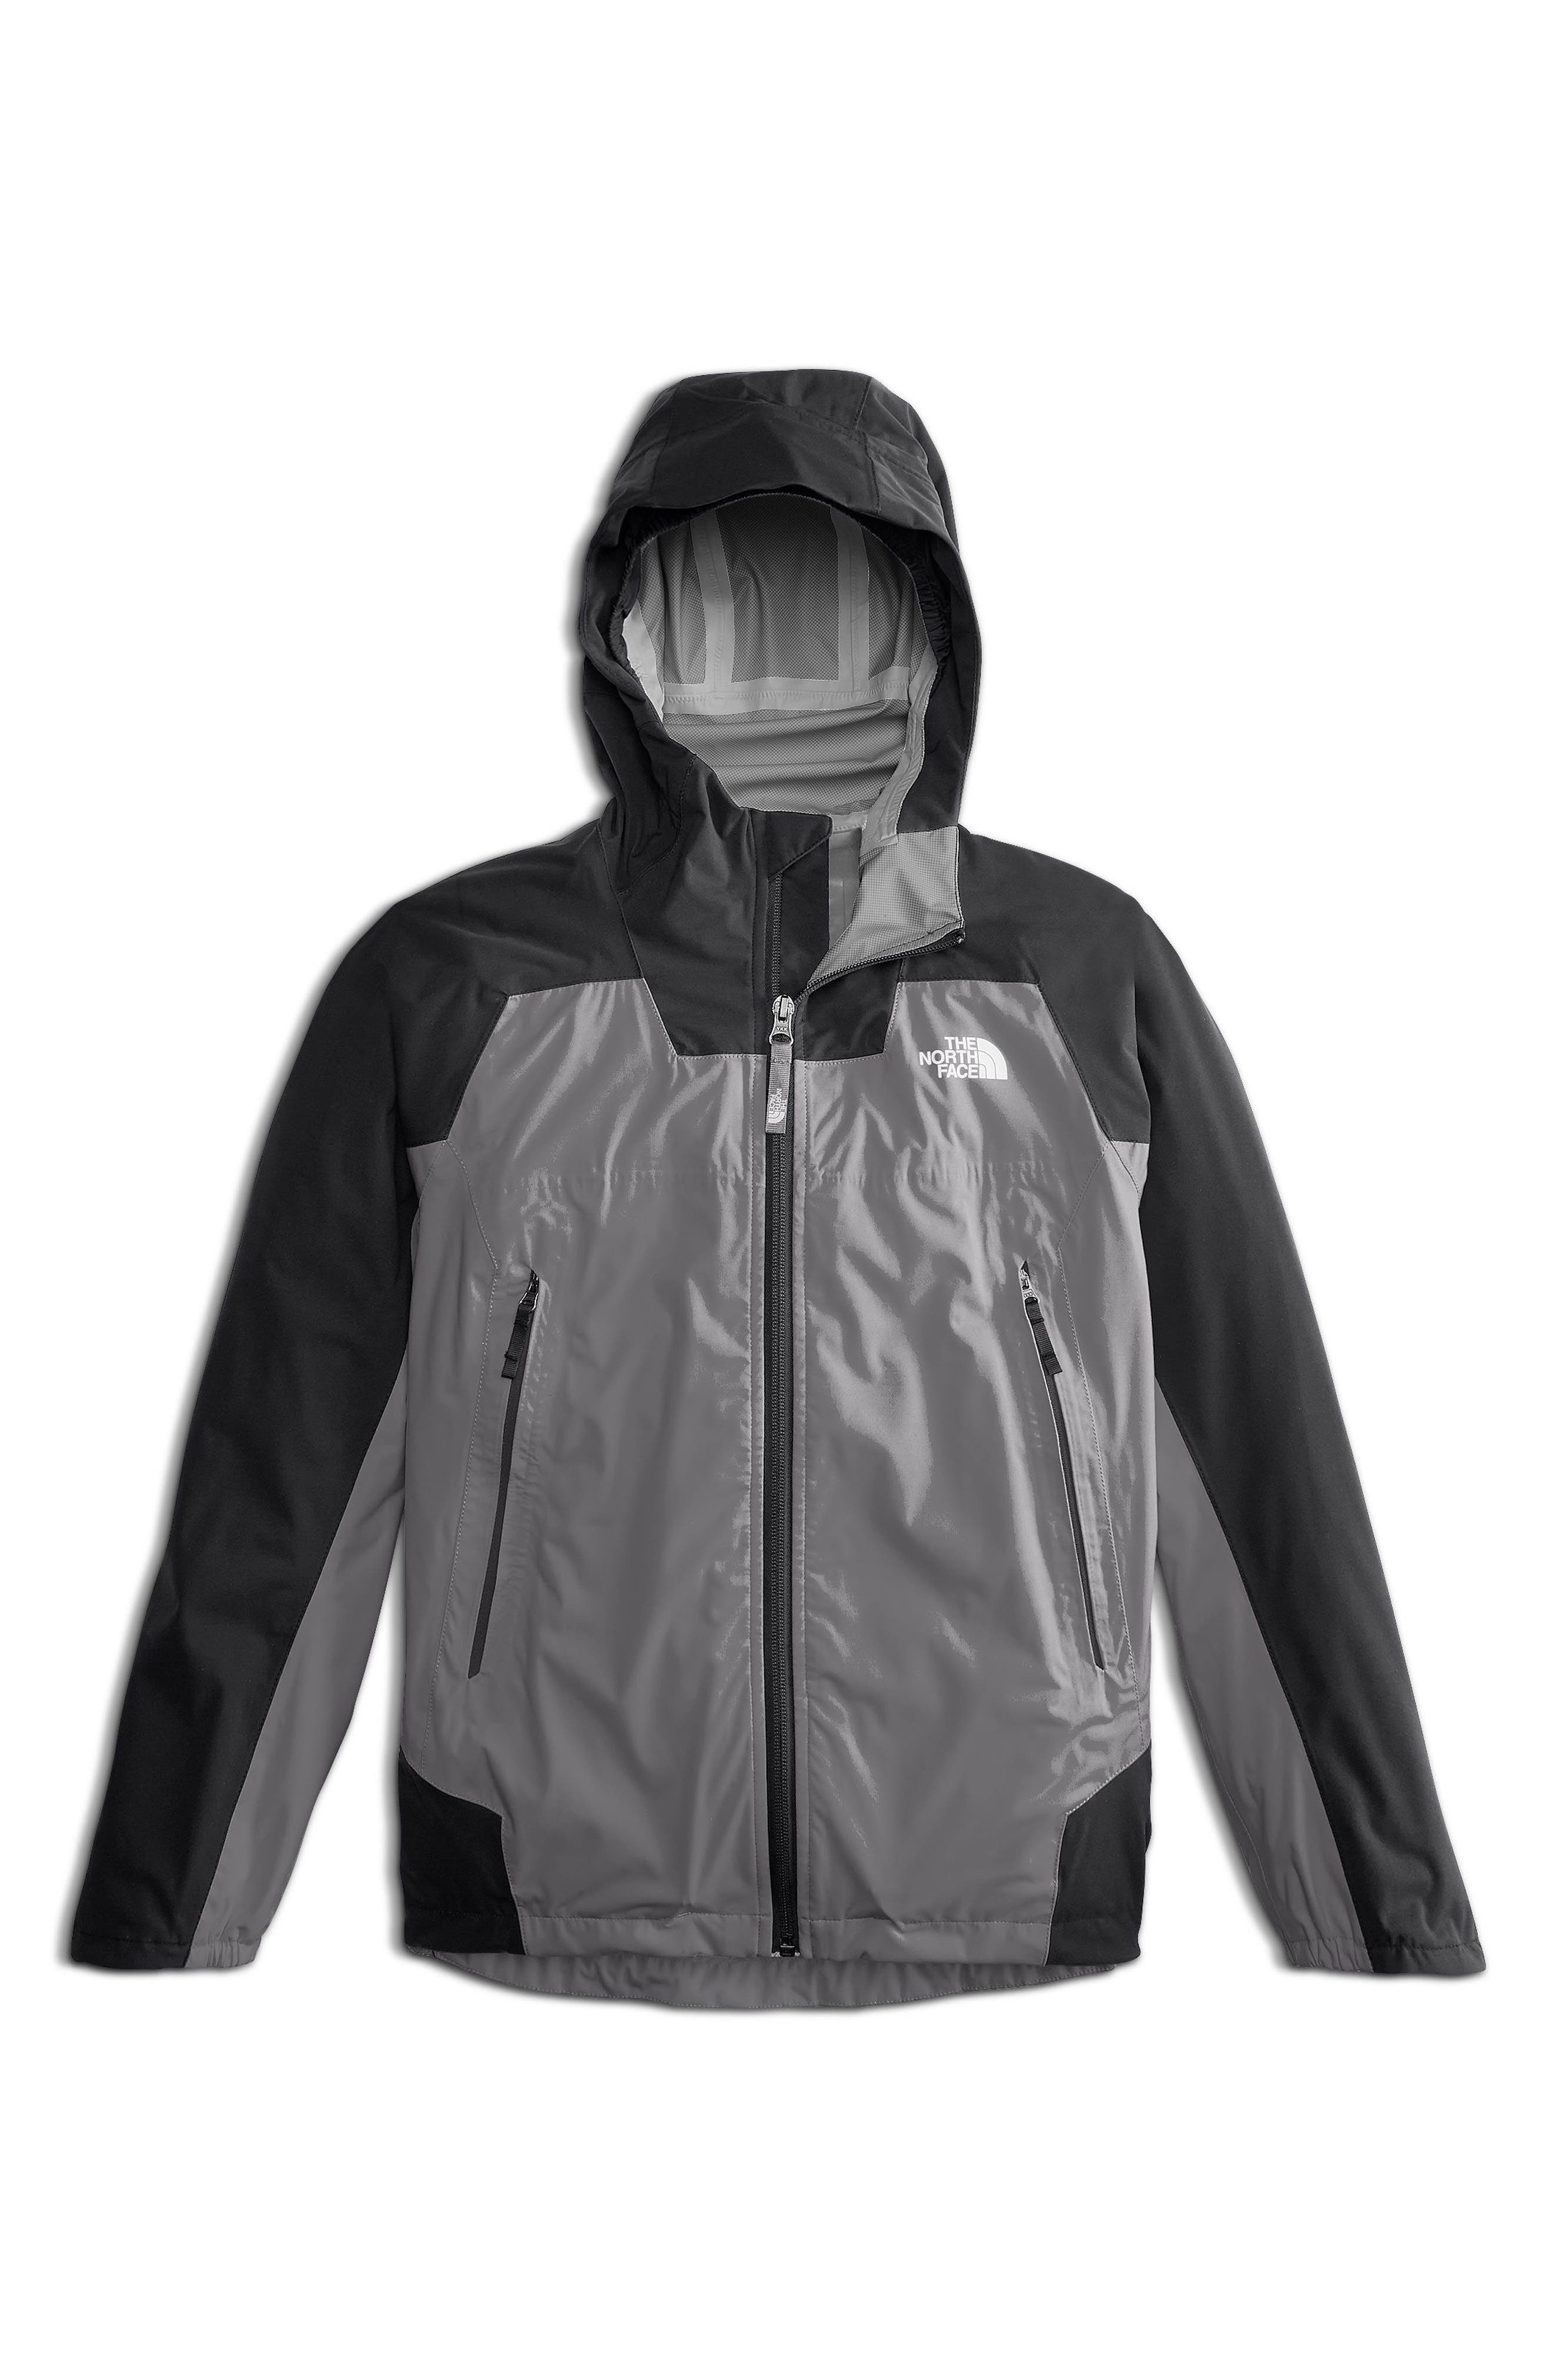 Allproof Stretch Hooded Rain Jacket,                             Main thumbnail 1, color,                             Mid Grey